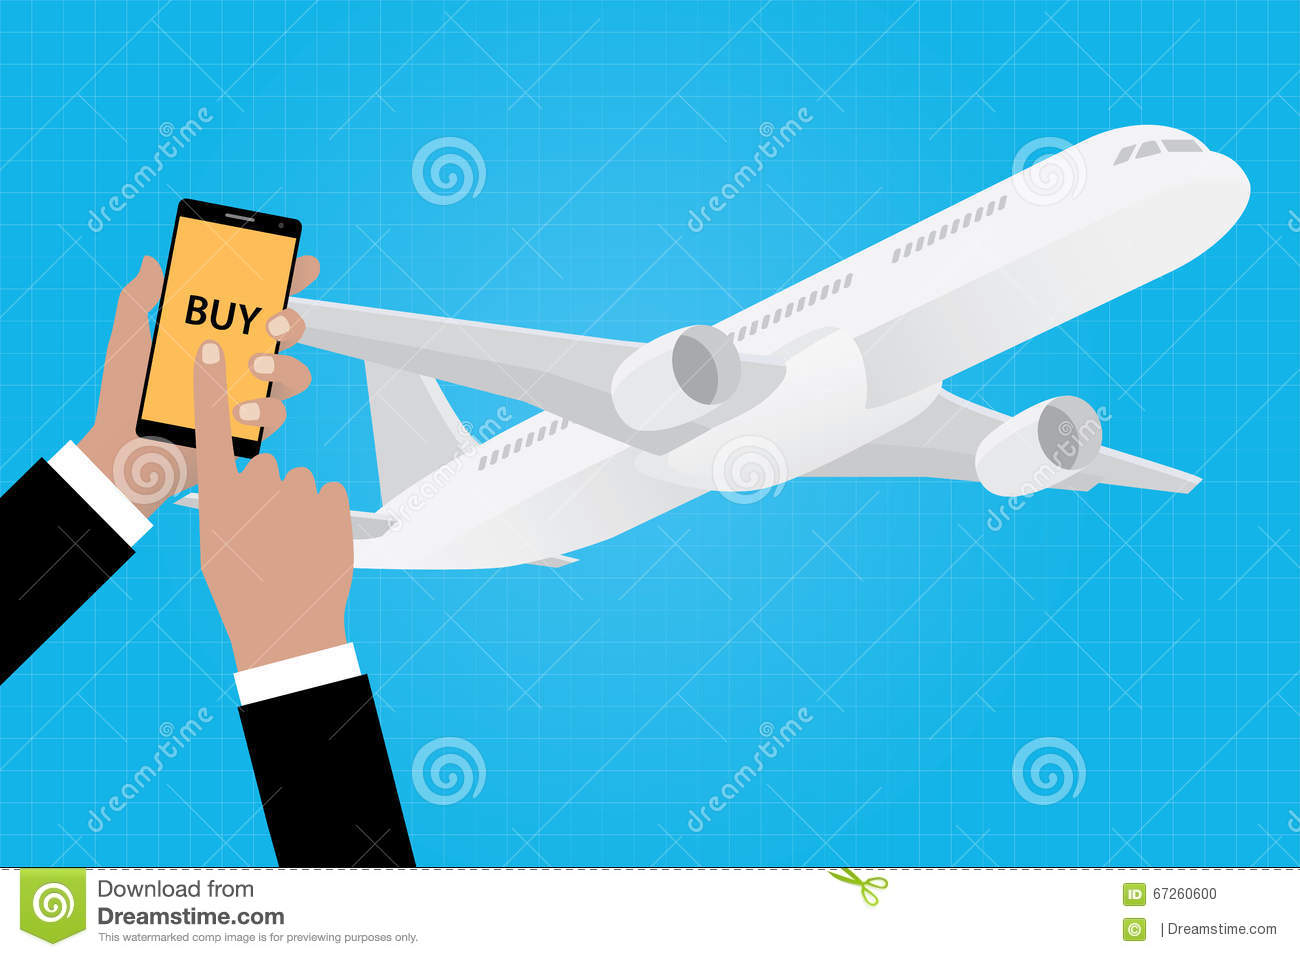 Buy Online Ticket Airline Airlines With Smartphone App Apps Stock Vector - Illustration of card. internet: 67260600